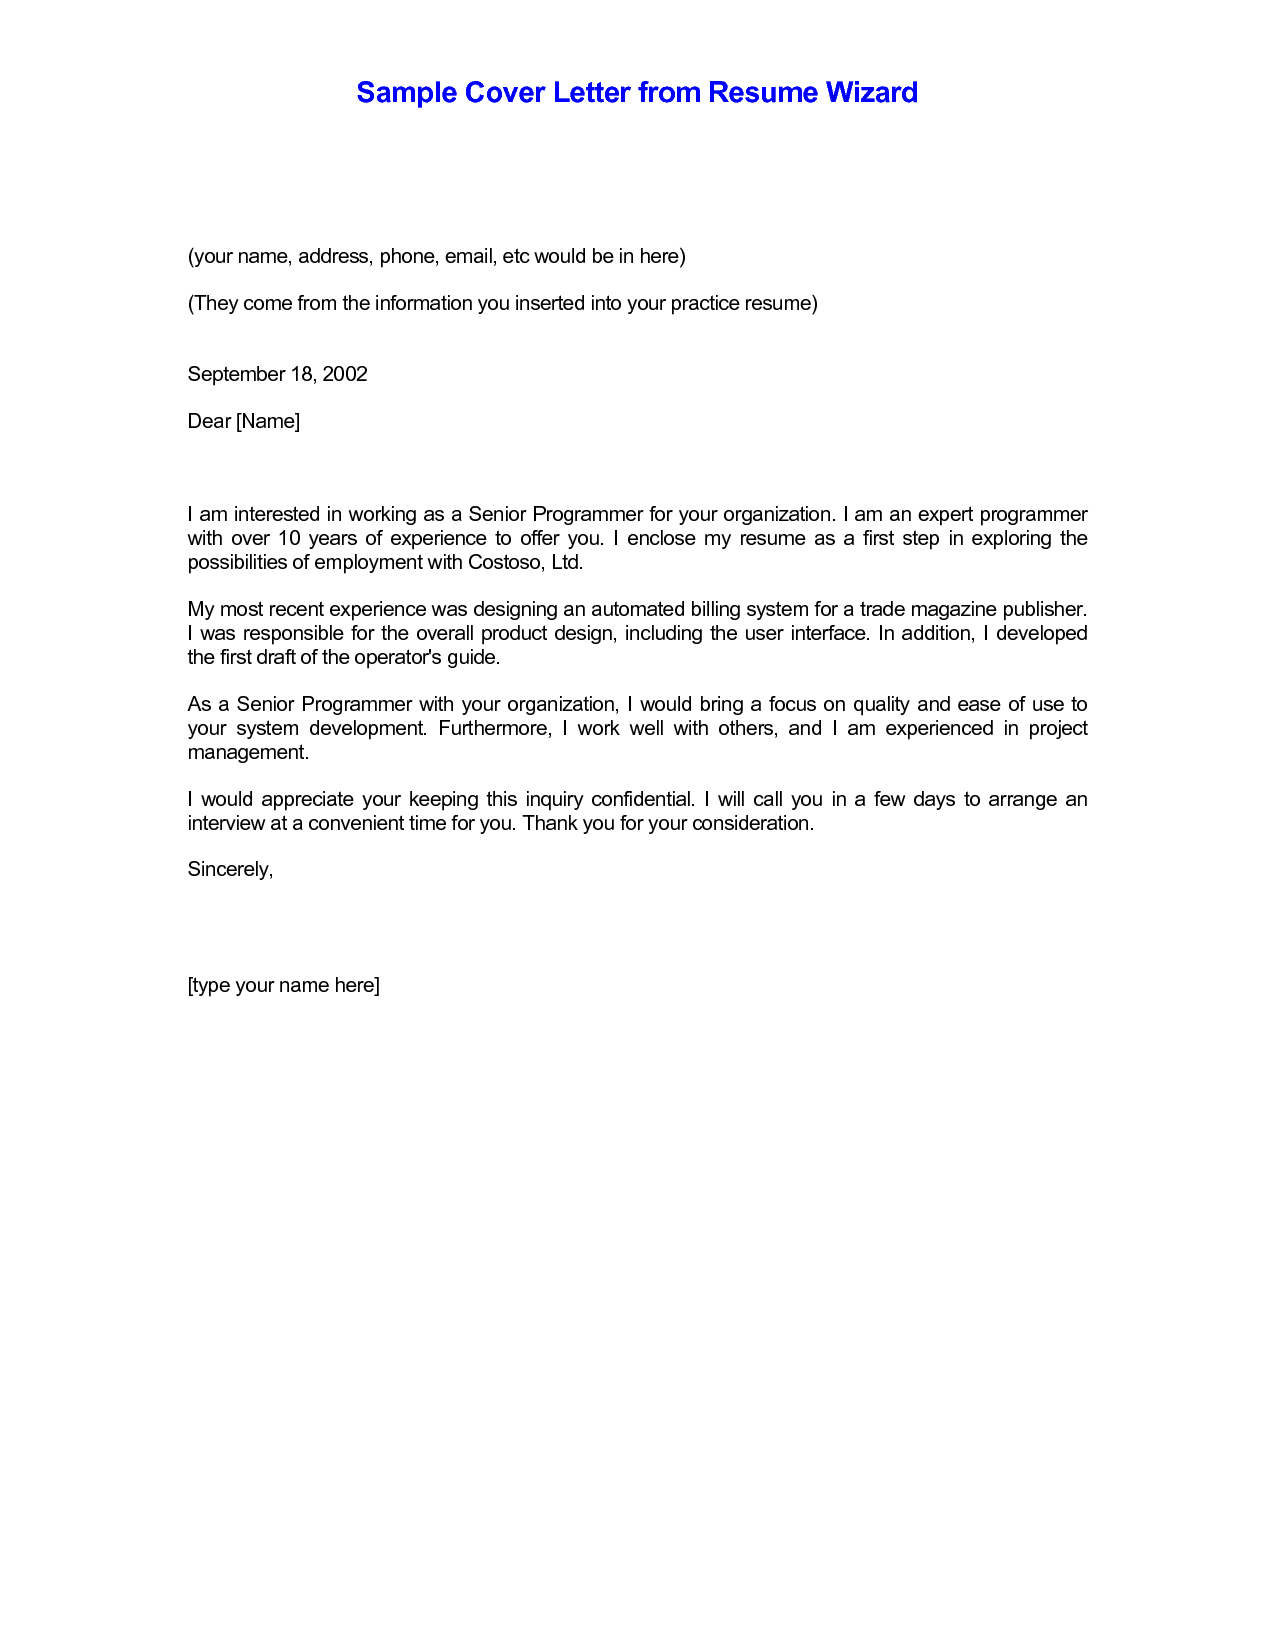 Customer Service Industry Cover Letter Pinterest Example Of Cover Letters  For Customer Service Jobs Carpinteria Rural